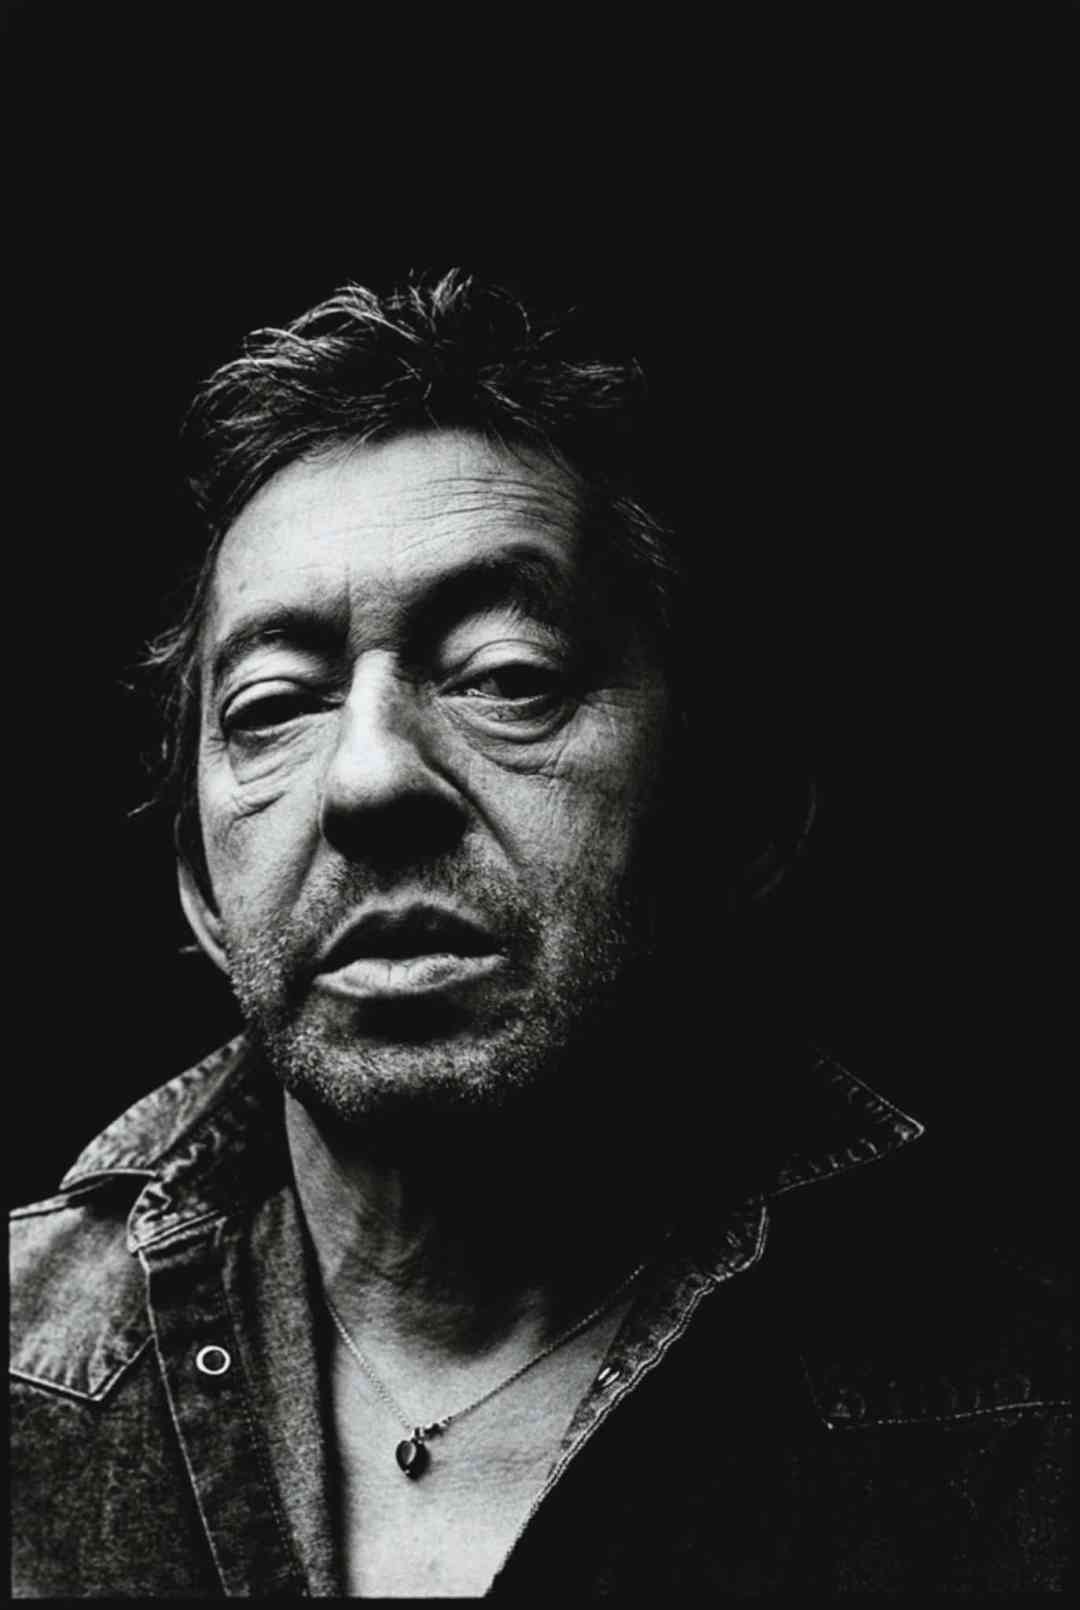 074-serge-gainsbourg-theredlist